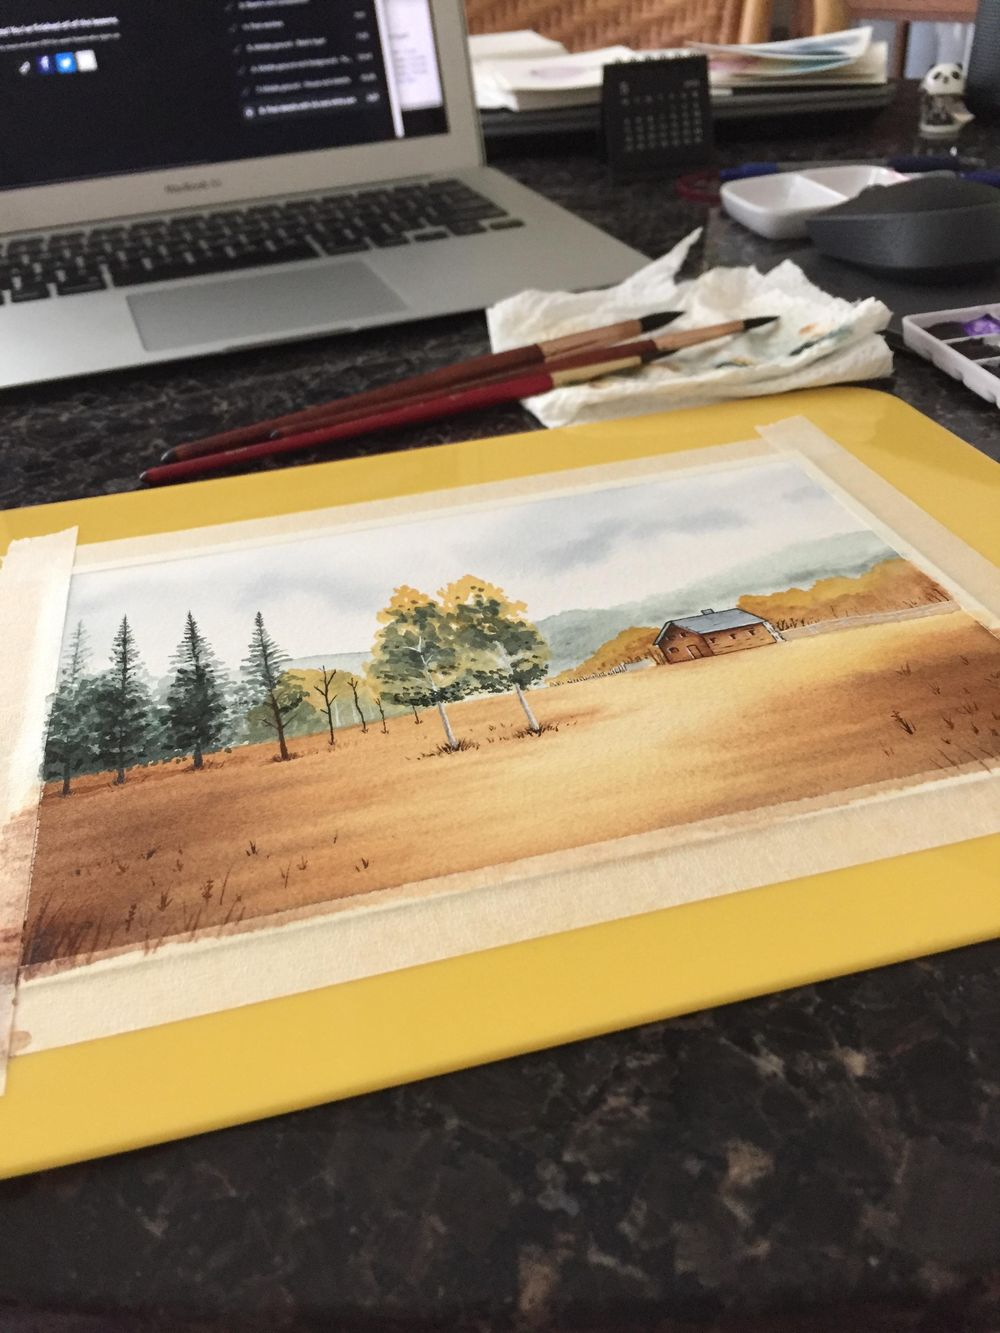 Painting a Landscape in Watercolour - image 3 - student project